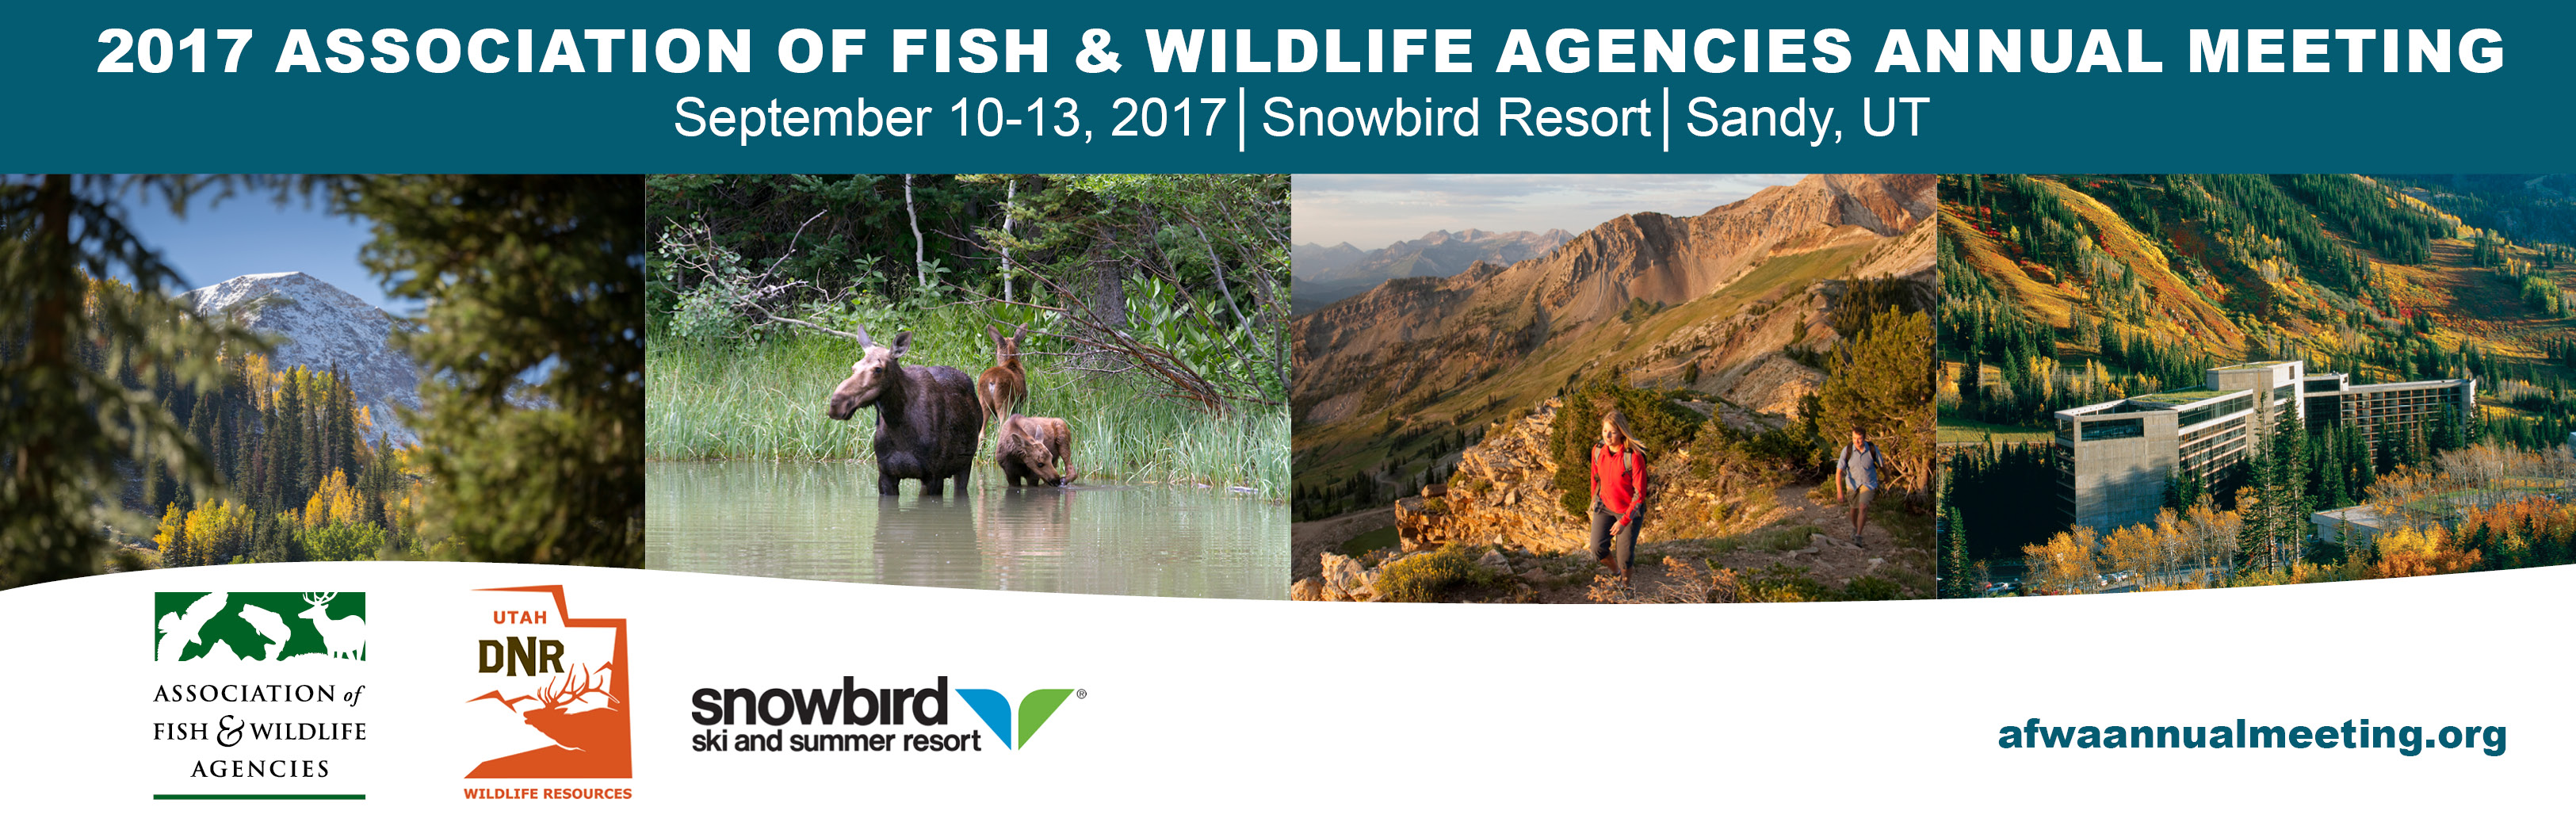 Association of Fish and Wildlife Agencies 107th Annual Meeting